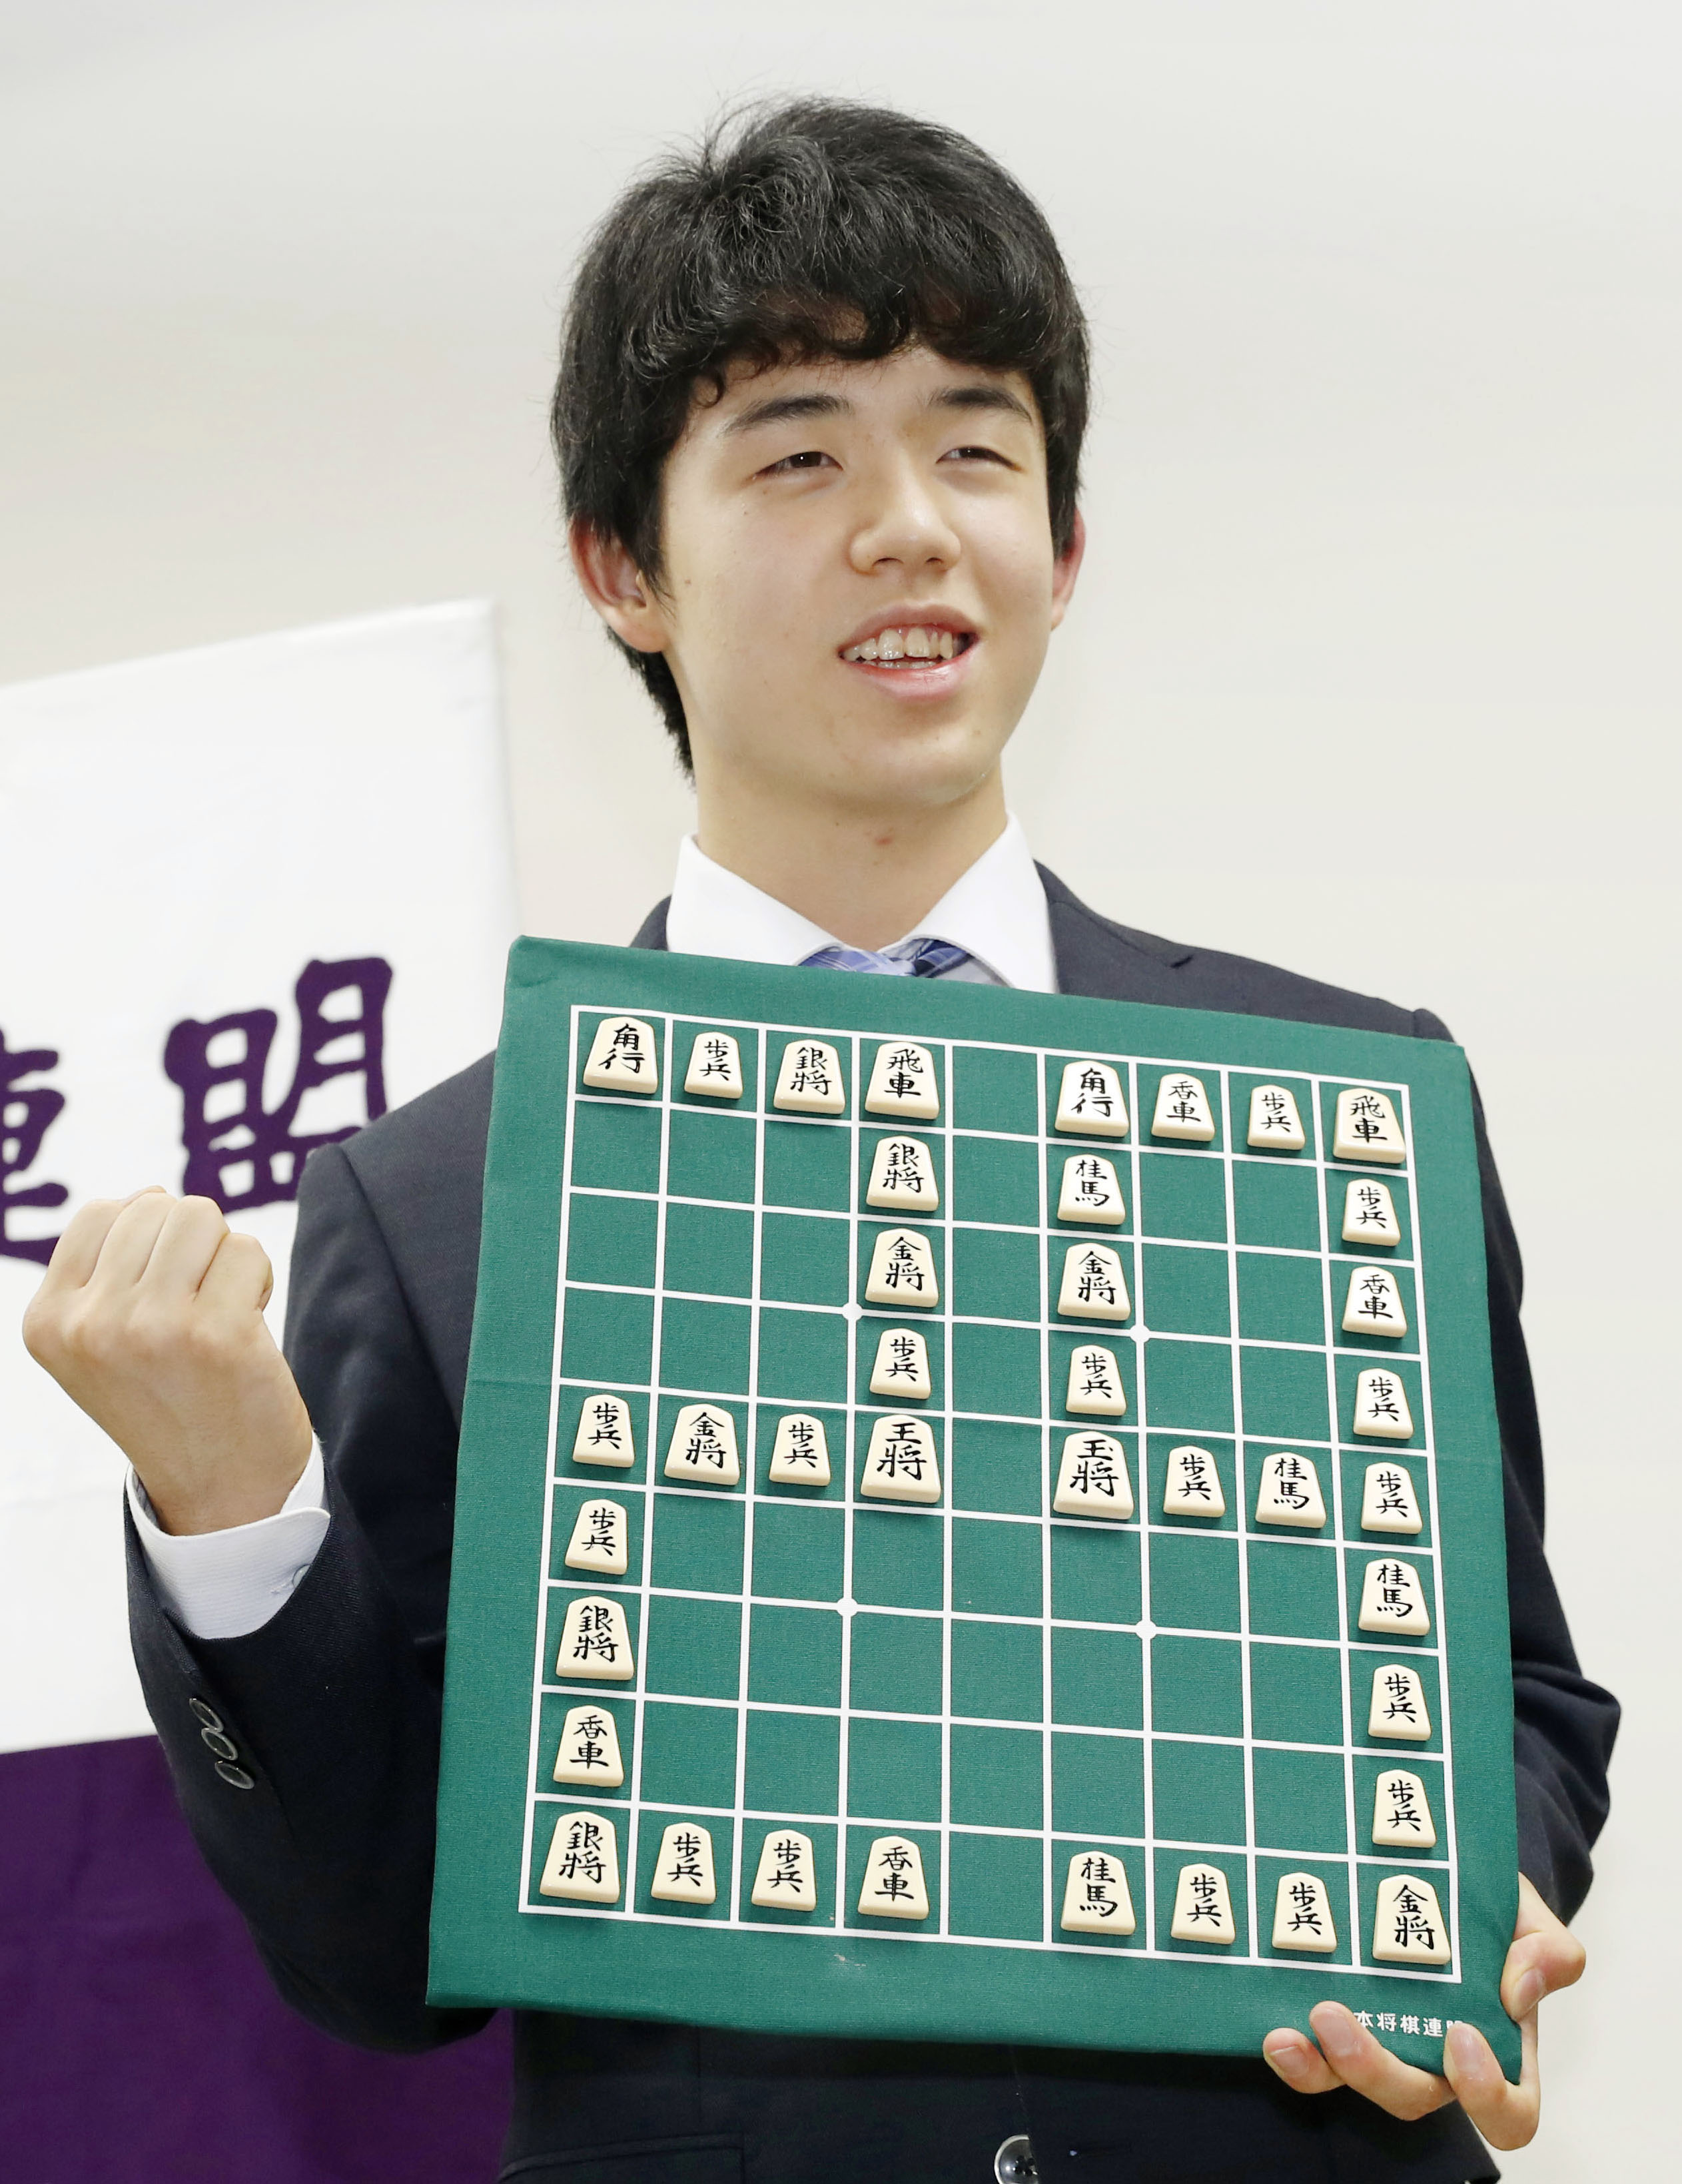 Japan's youngest shogi prodigy sets new record with 29th straight win